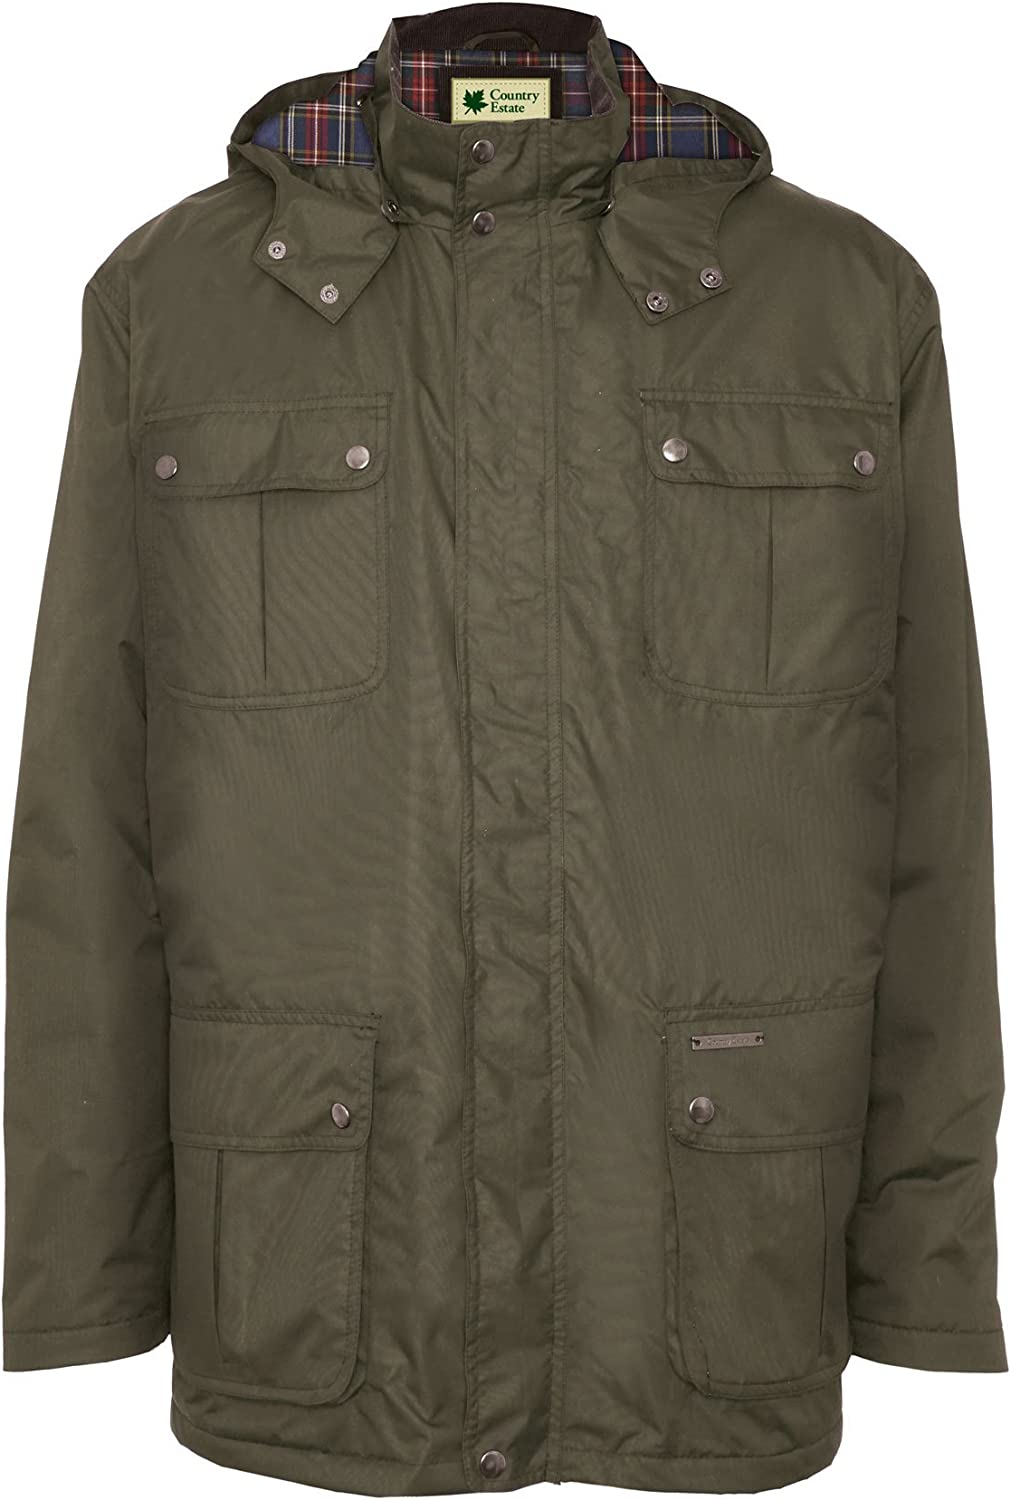 Olive Champion Mens Balmoral Country Estate Waterproof Winter Coat 2XL